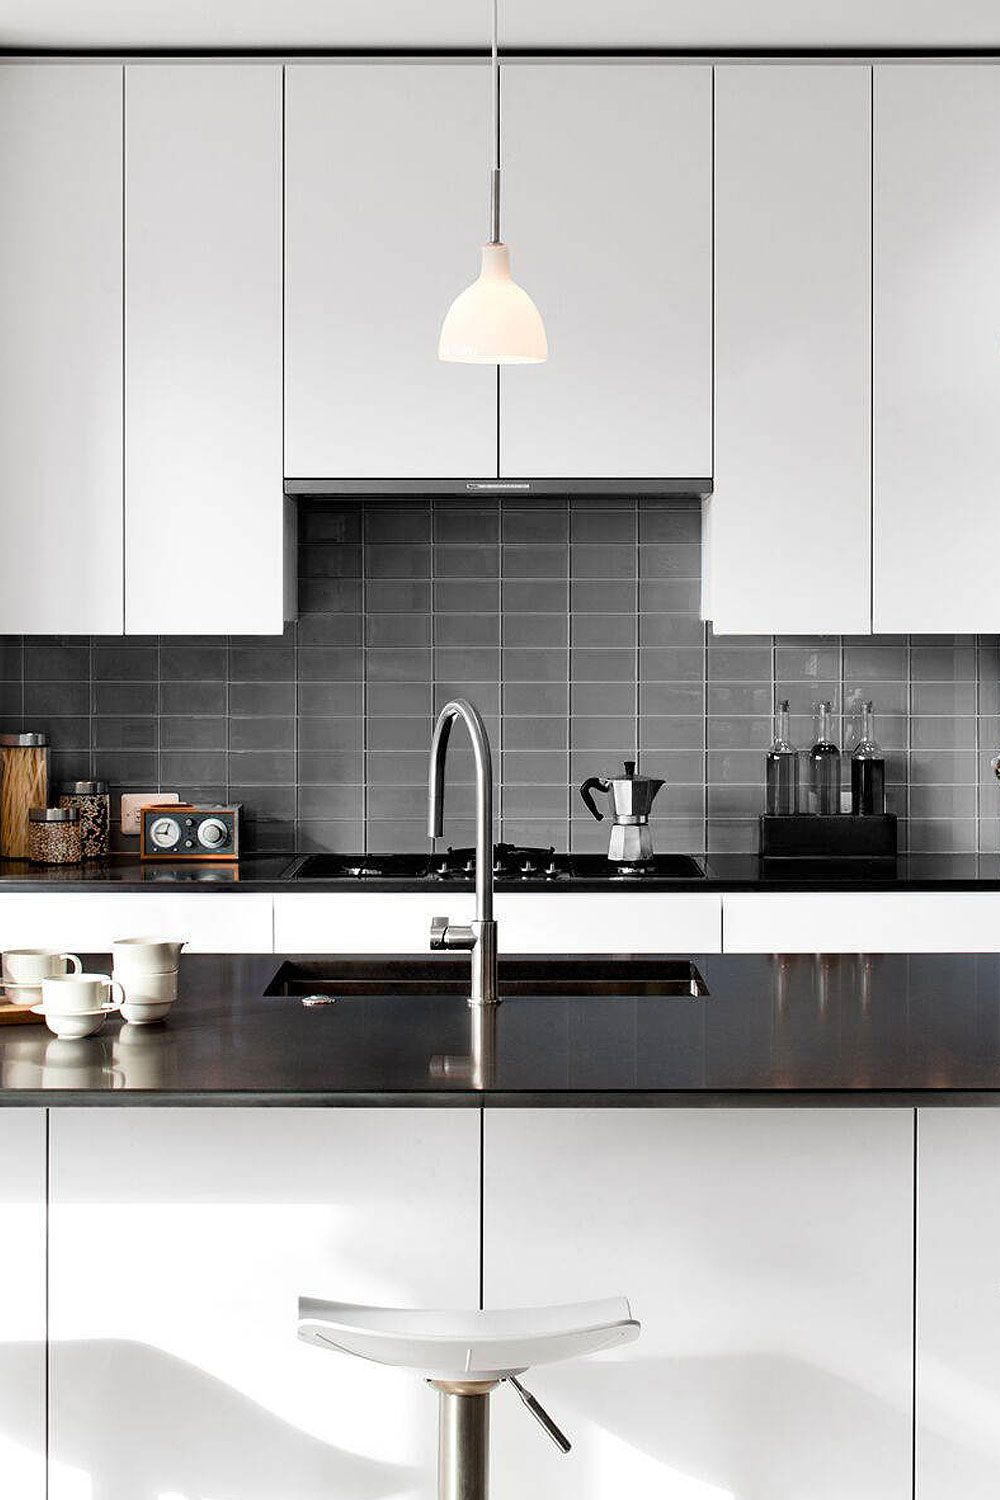 50+ Black Countertop Backsplash Ideas (Tile Designs, Tips ... on Backsplash Ideas For Black Countertops  id=97759